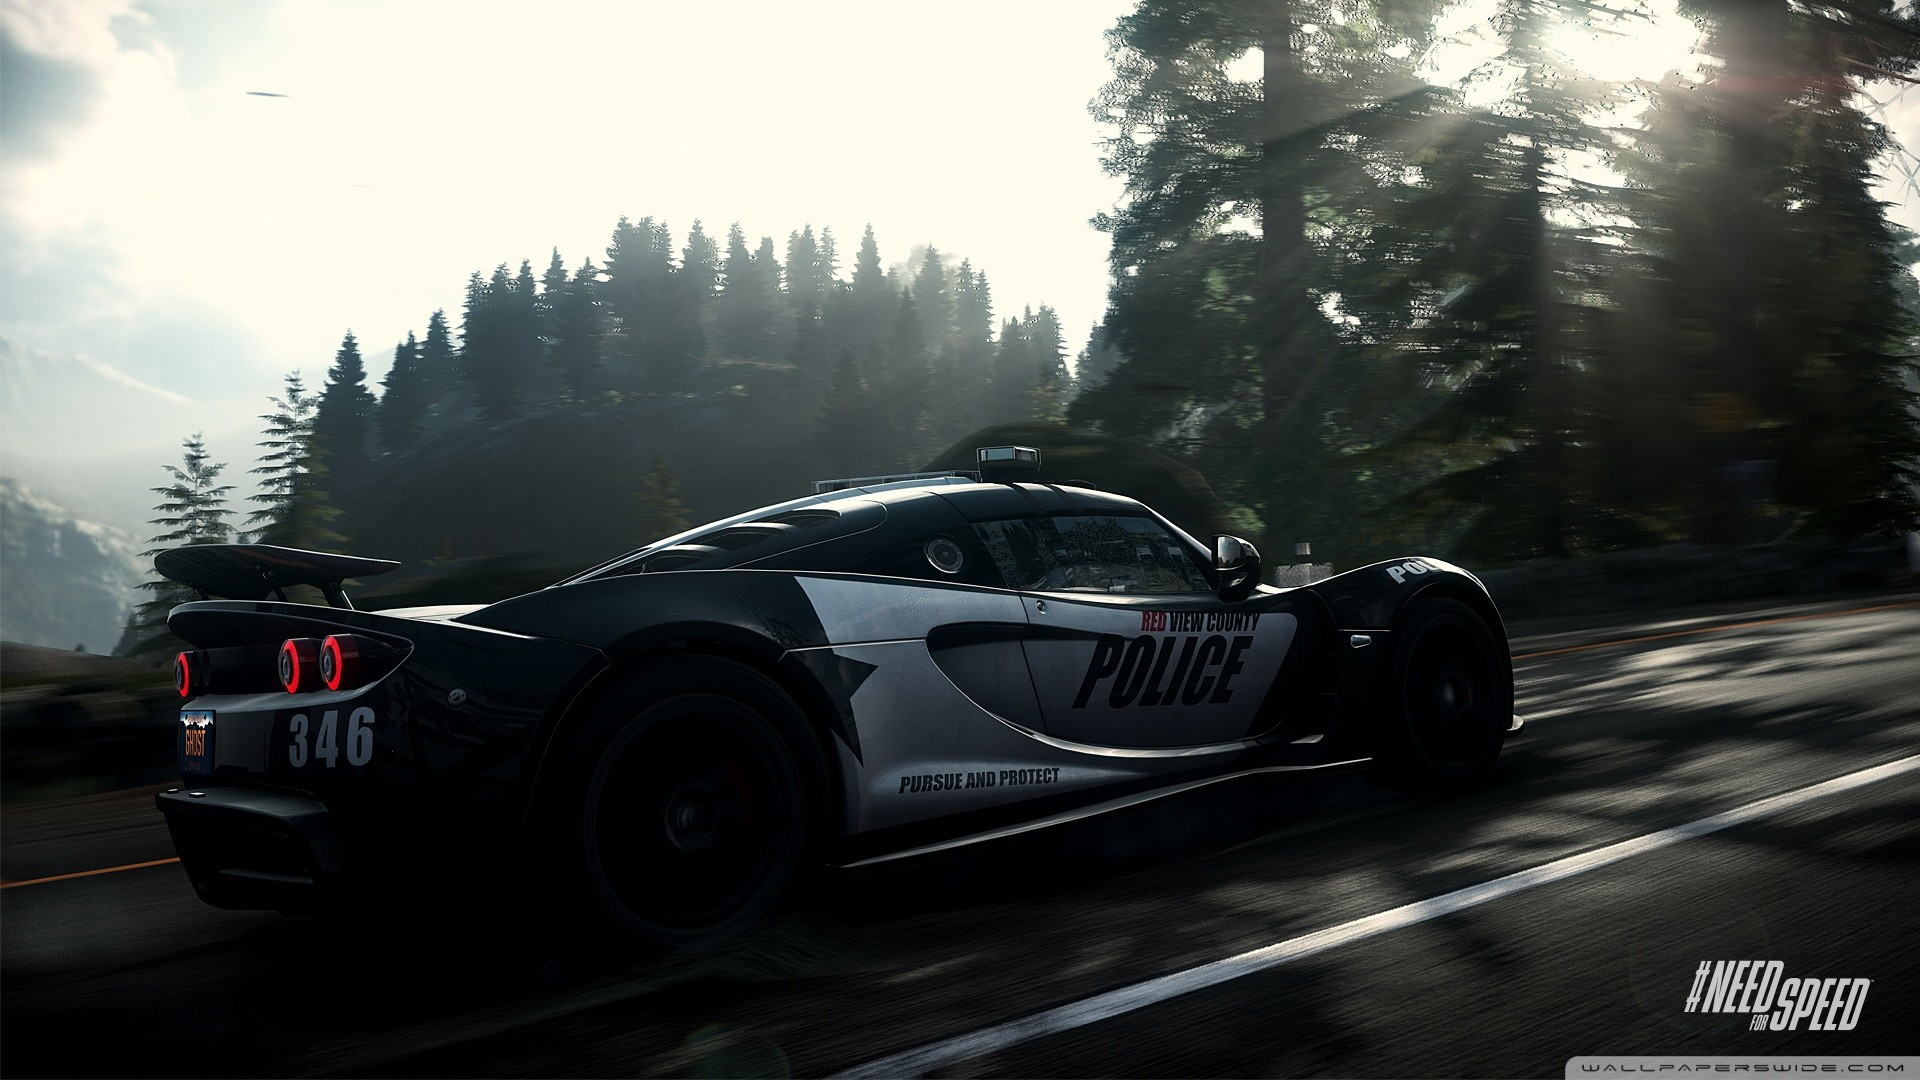 1920x1080 Need for Speed Rivals Police Car HD desktop wallpaper : Widescreen